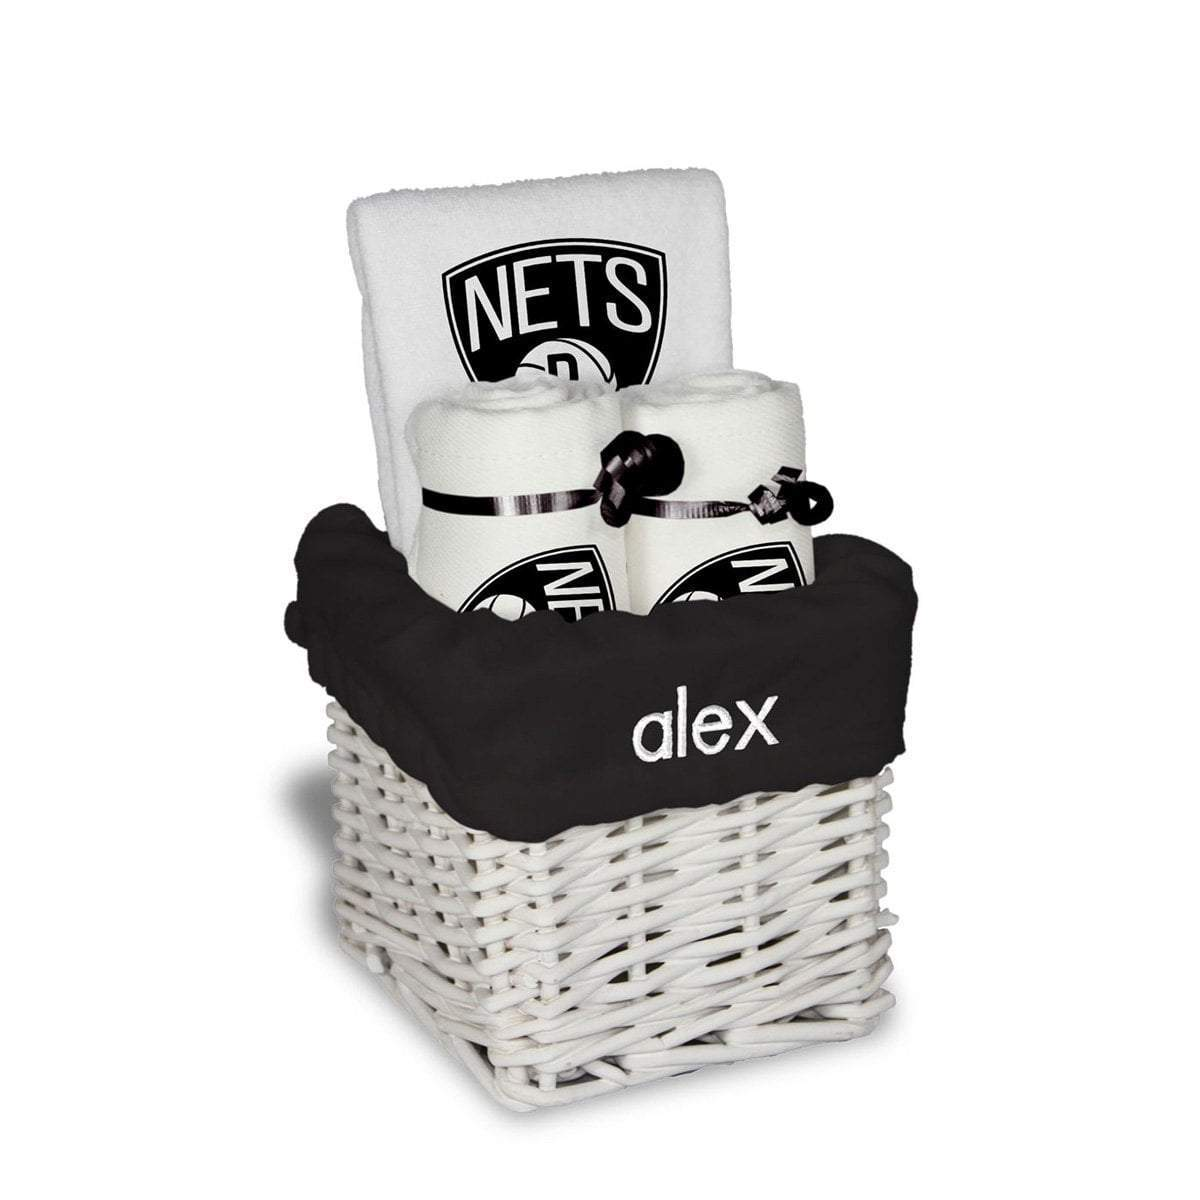 Chad & Jake Accessories Brooklyn Nets Personalized Small Gift Basket by Chad & Jake